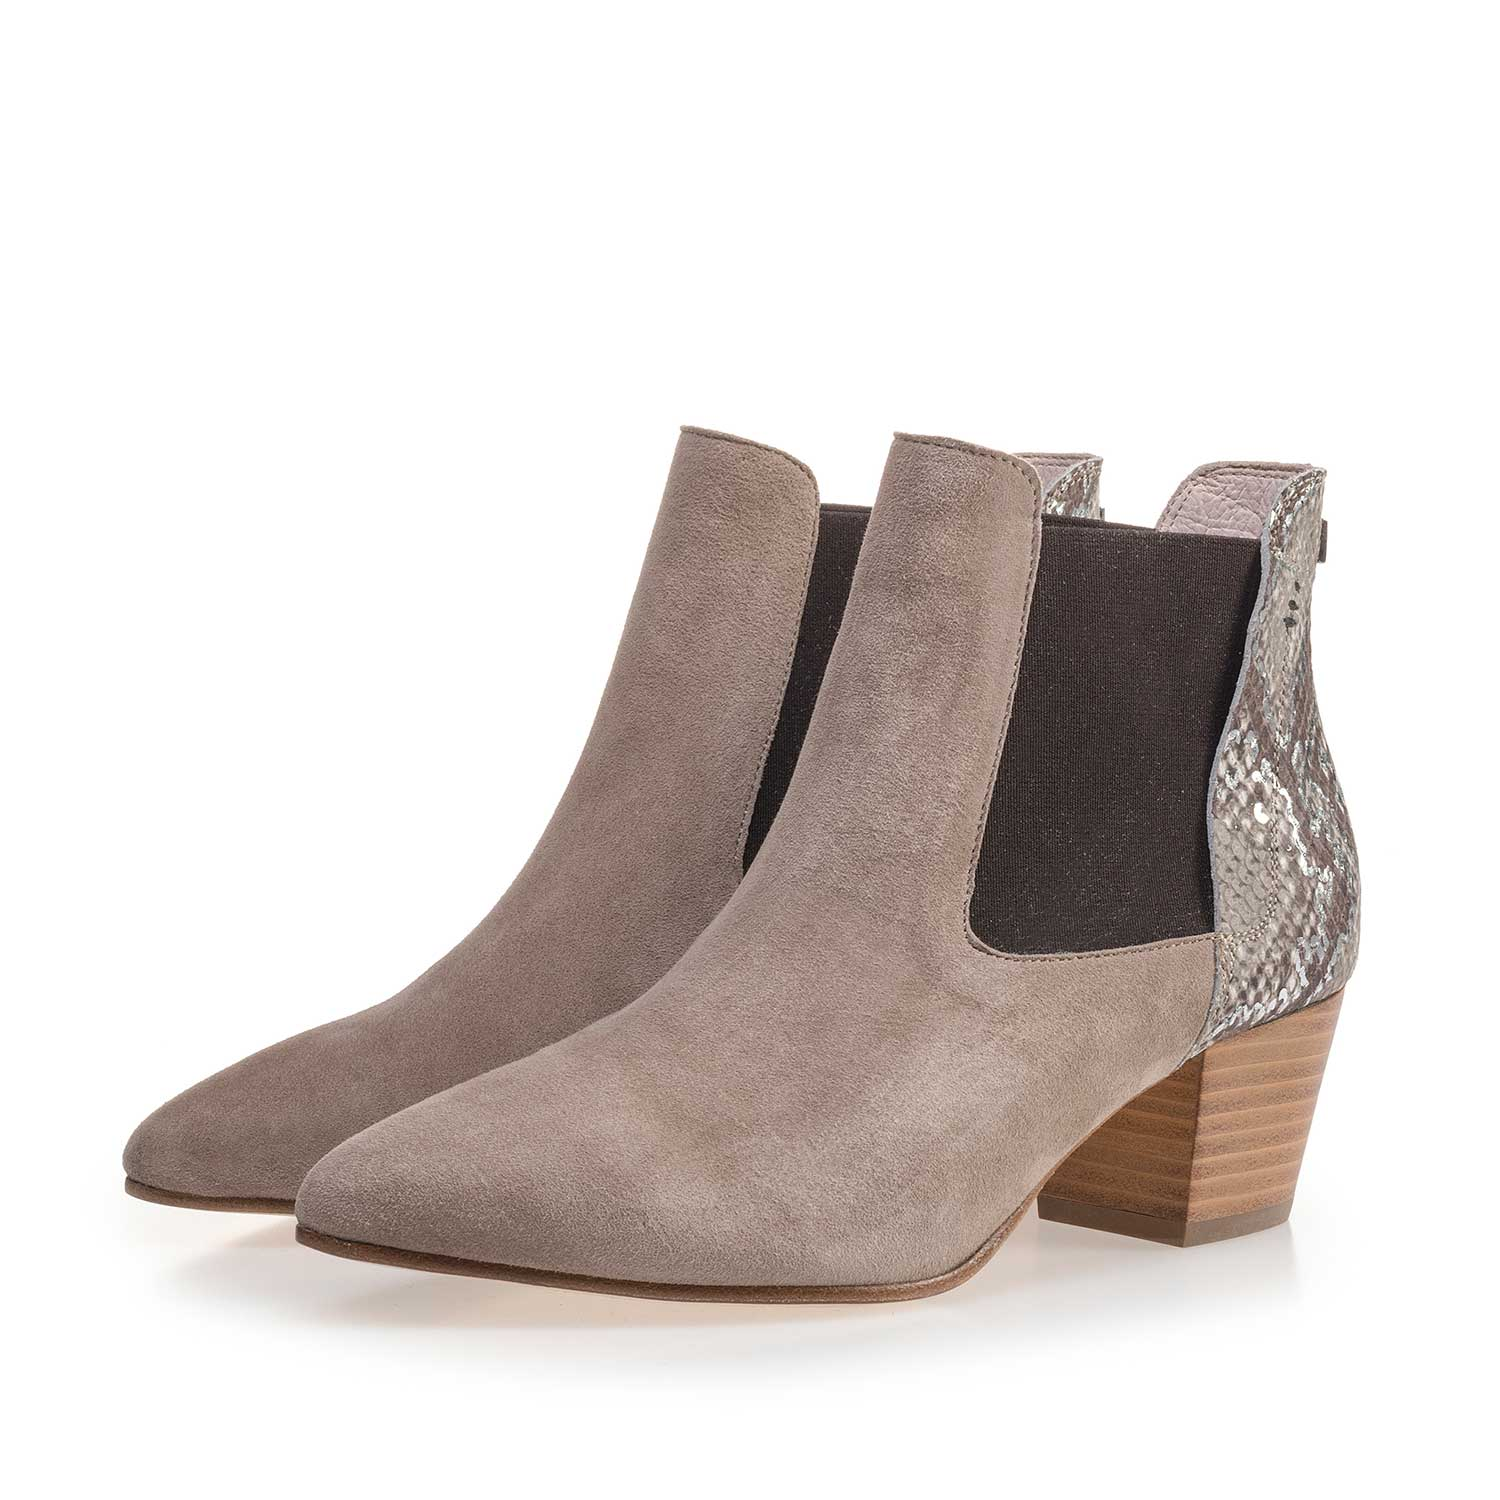 85250/00 - Taupe-coloured calf's suede leather Chelsea boot